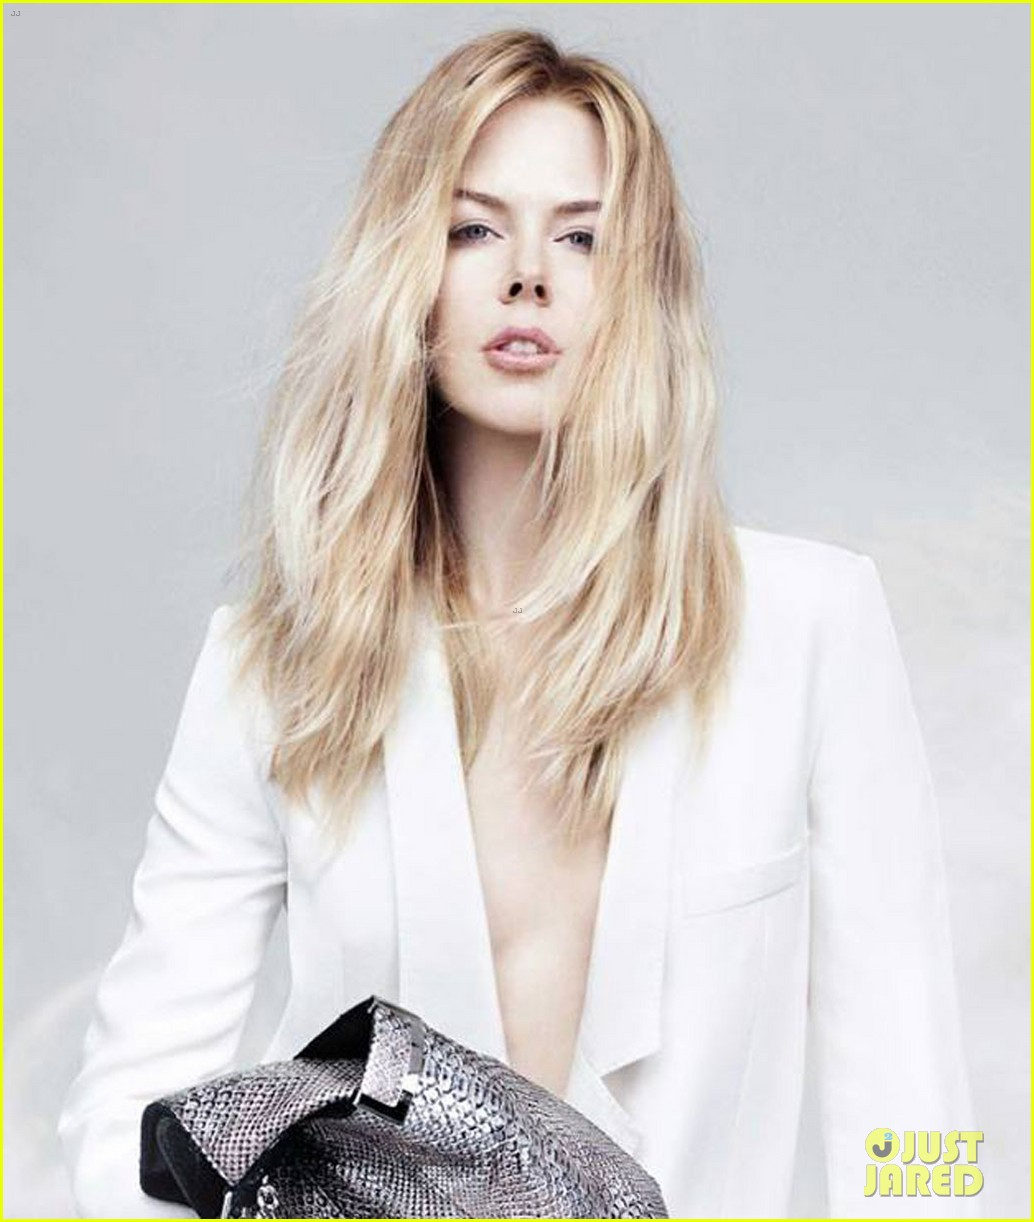 Buy Kidman nicole for jimmy choo pre-fall campaign picture trends